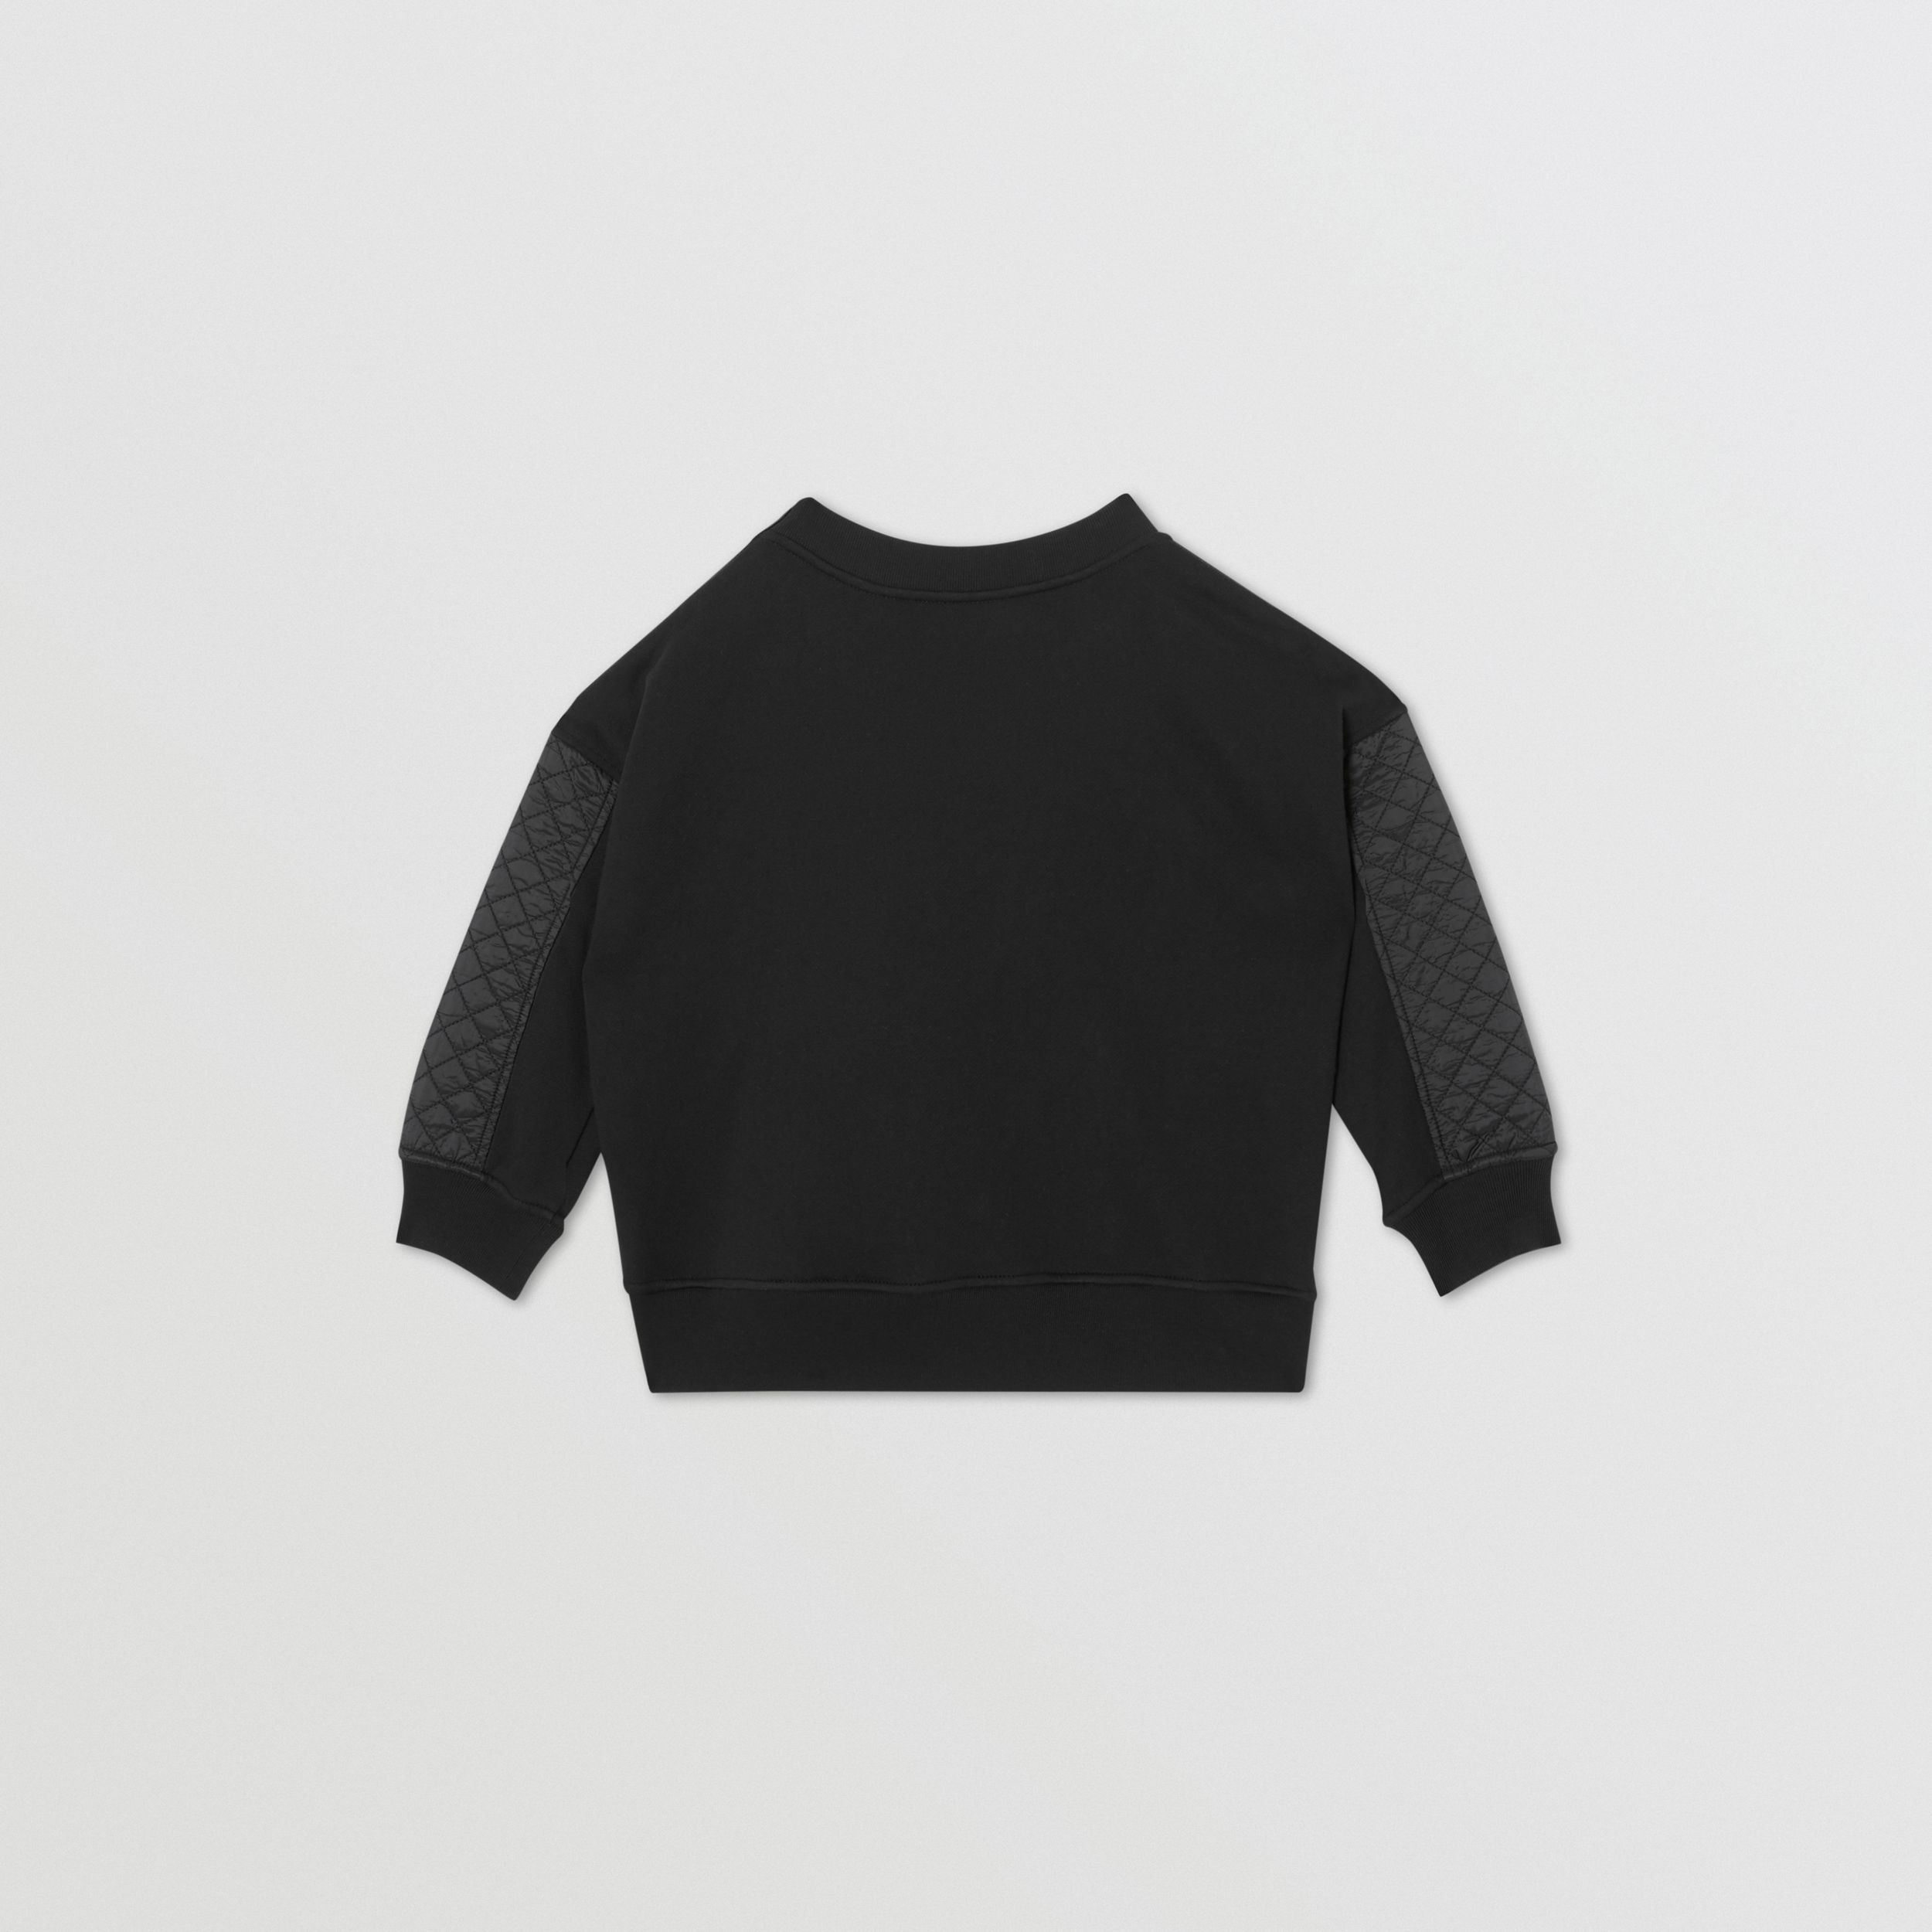 Monogram Quilted Panel Cotton Sweatshirt in Black | Burberry - 4